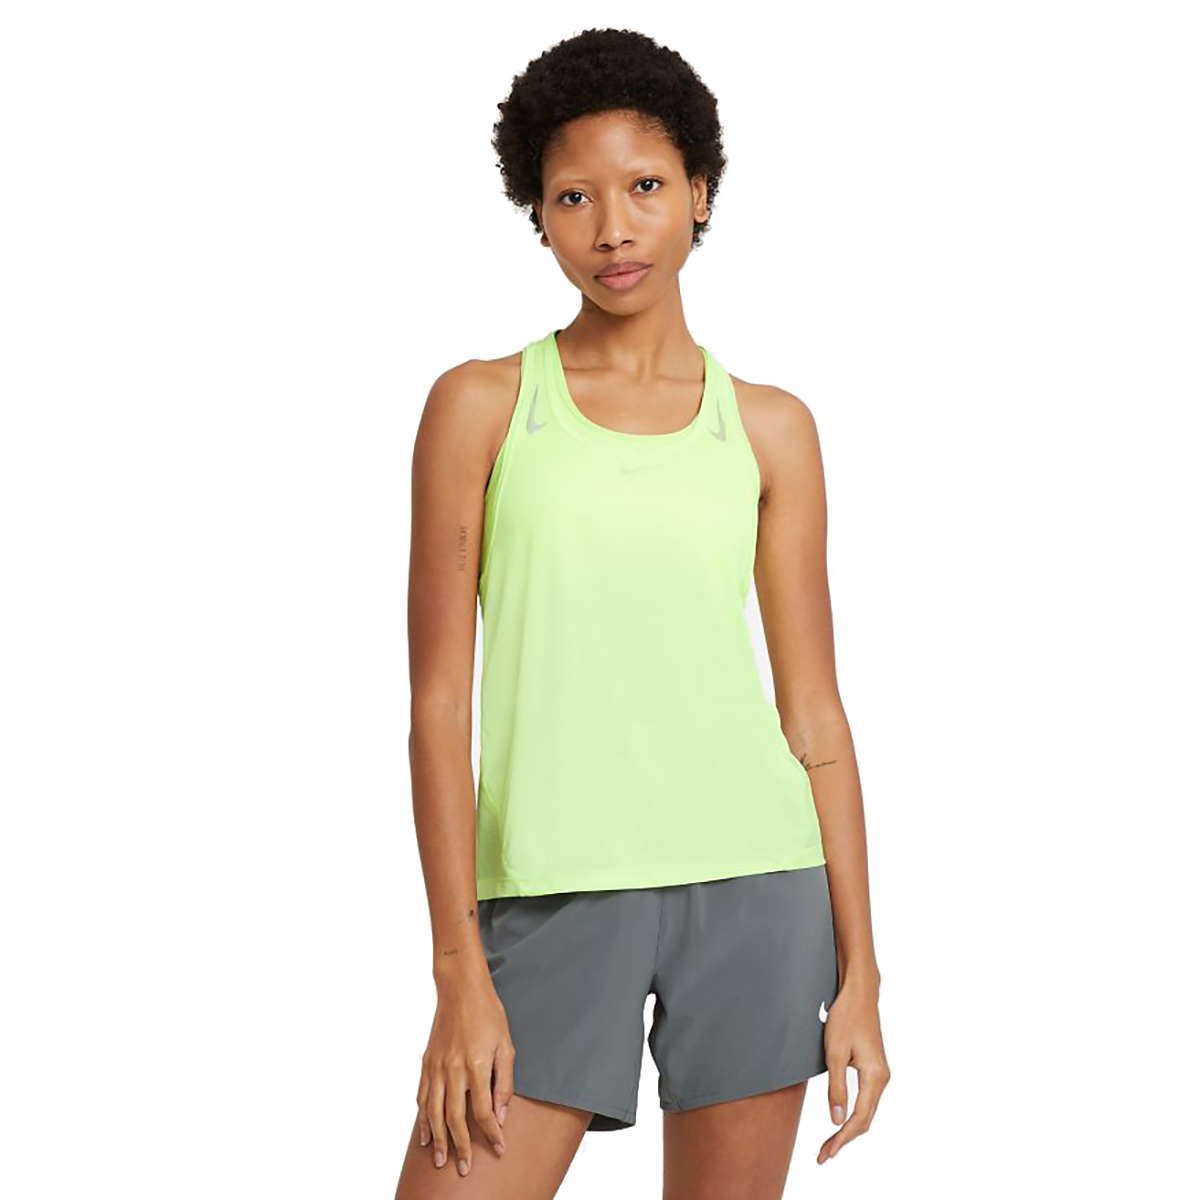 Women's Nike Miler Women's Running Singlet - Color: Barely Volt/Reflective Silver - Size: XS, Barely Volt/Reflective Silver, large, image 1